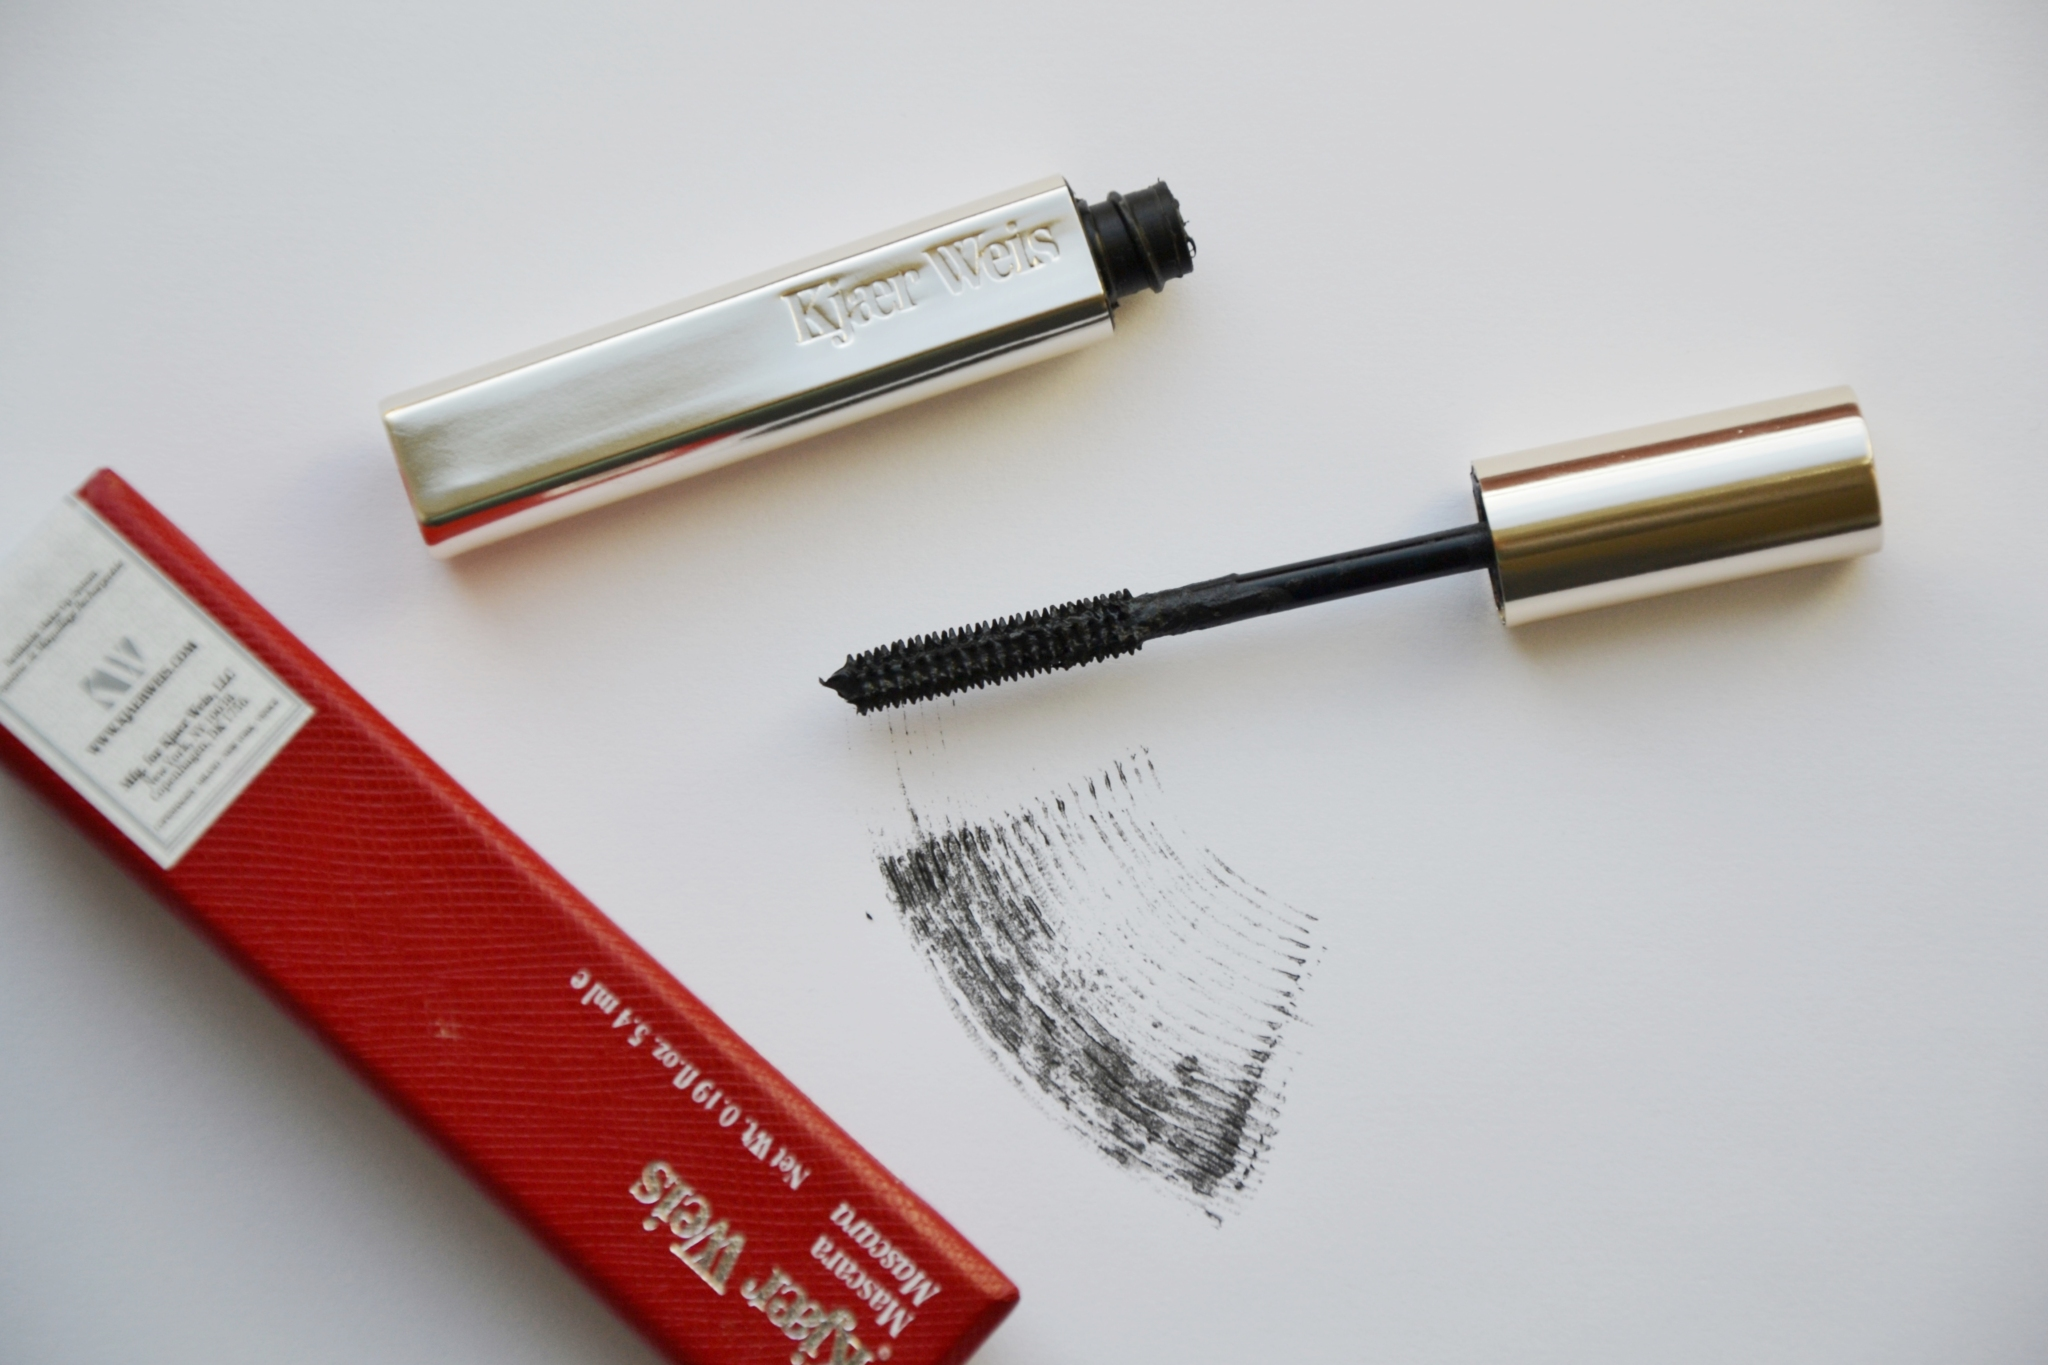 Kjaer Weis Mascara Tusz do rzęs